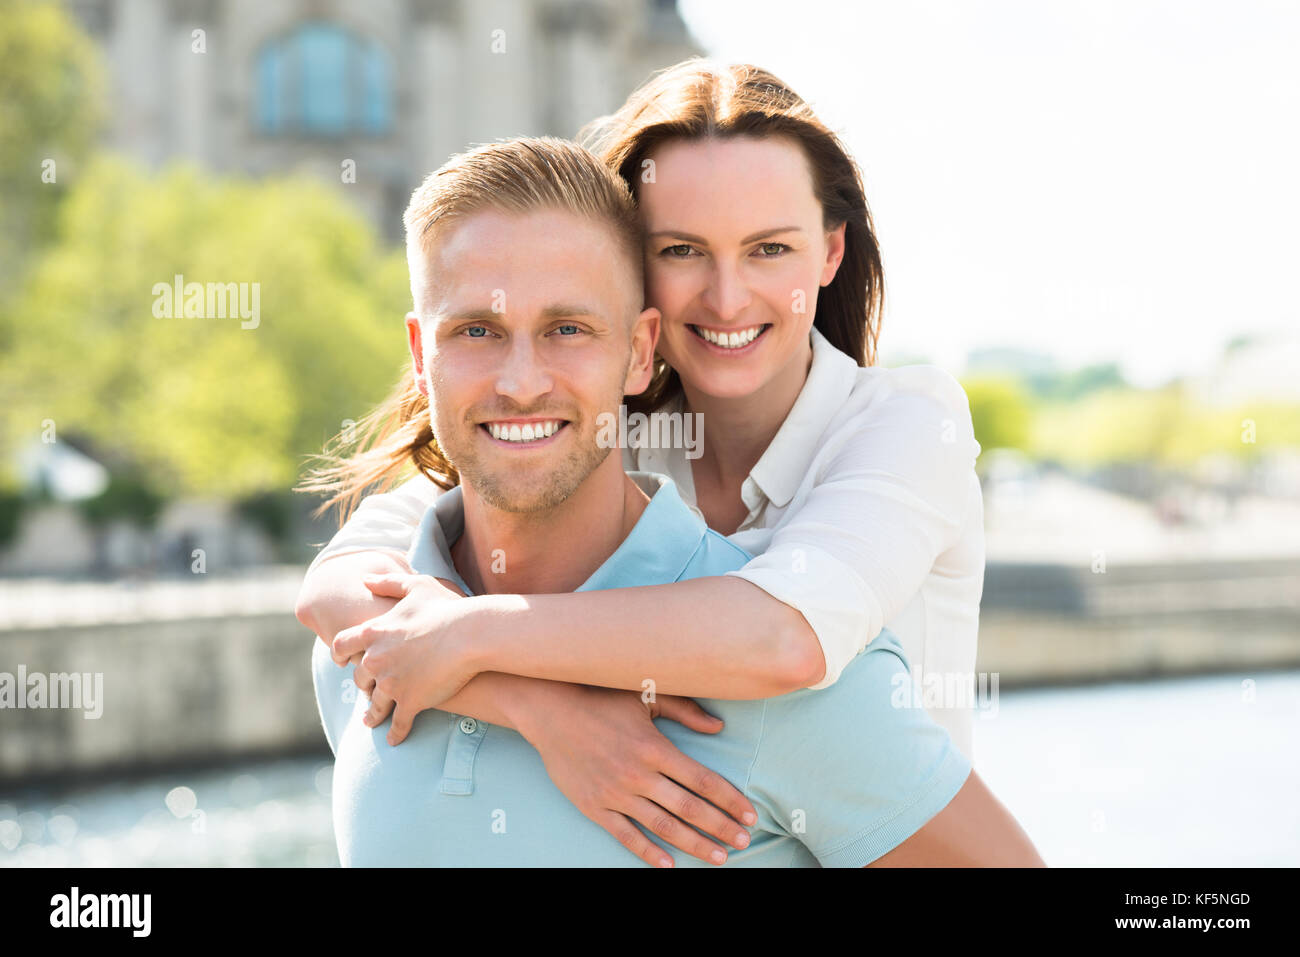 Portrait Of Young Happy Man Carrying Woman On His Back - Stock Image